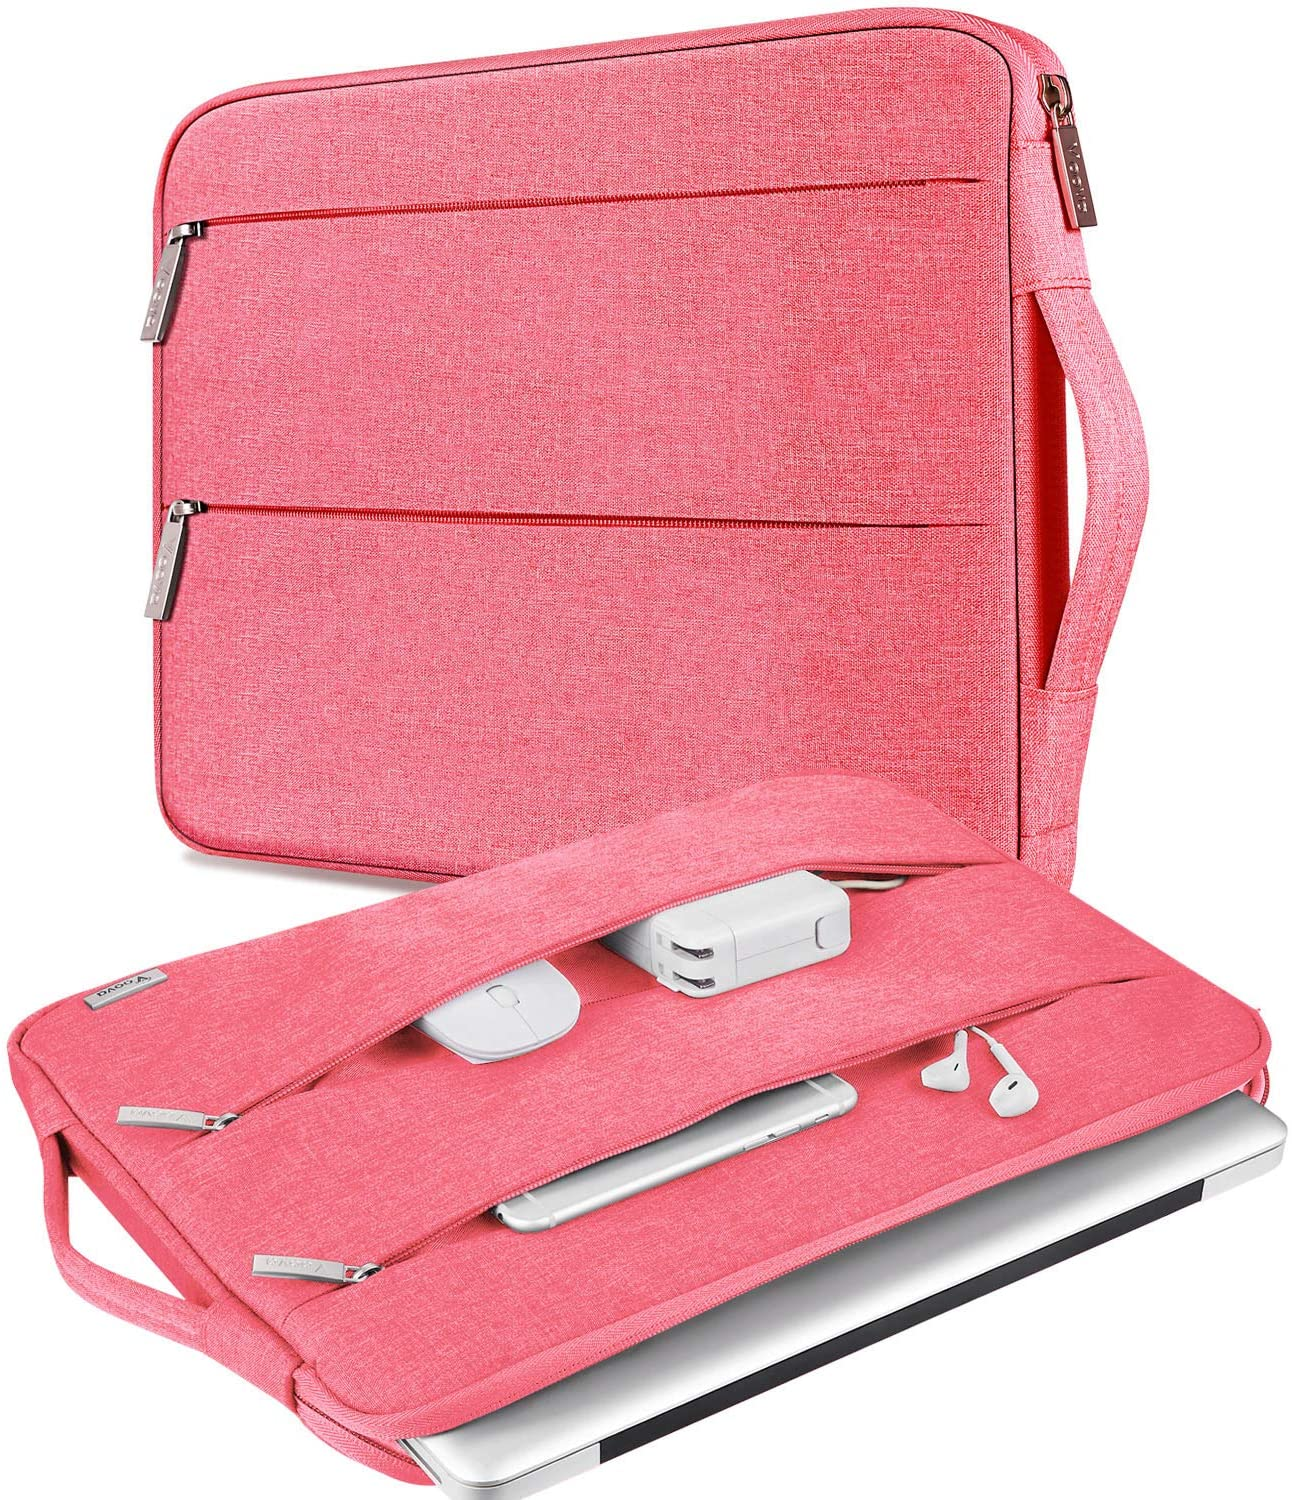 V Voova 13-13.5 inch Laptop Sleeve Bag Water Resistant Chromebook Case with Handle Compatible with MacBook Pro,MacBook Air,Lady Girl's Briefcase Notebook Slim Computer Cover with Handle,Pink